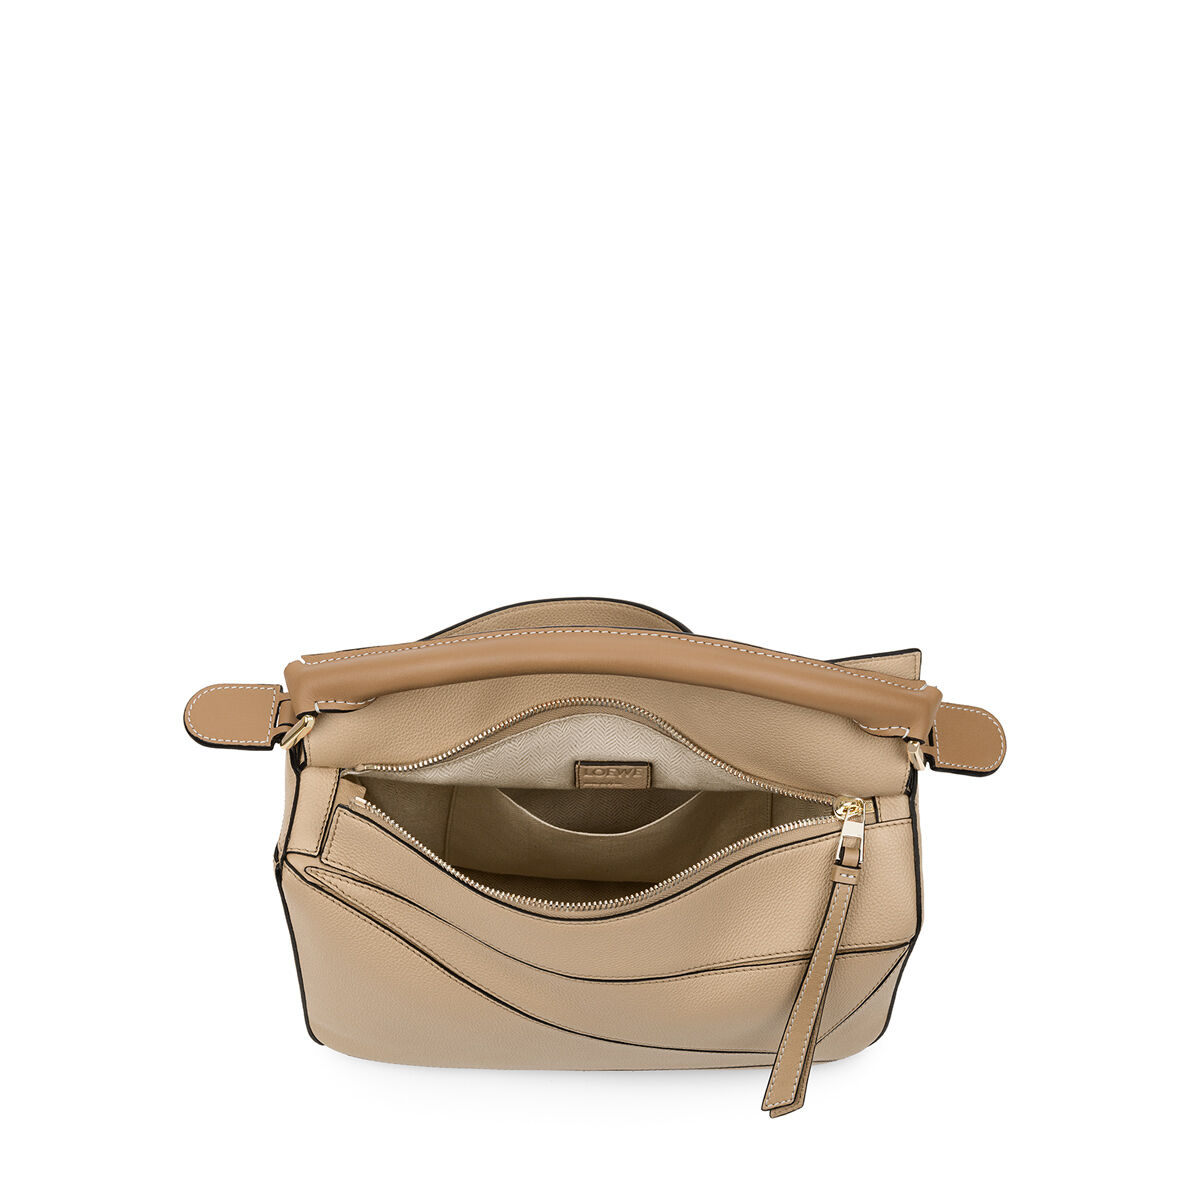 LOEWE パズル バッグ Sand/Mink Color all